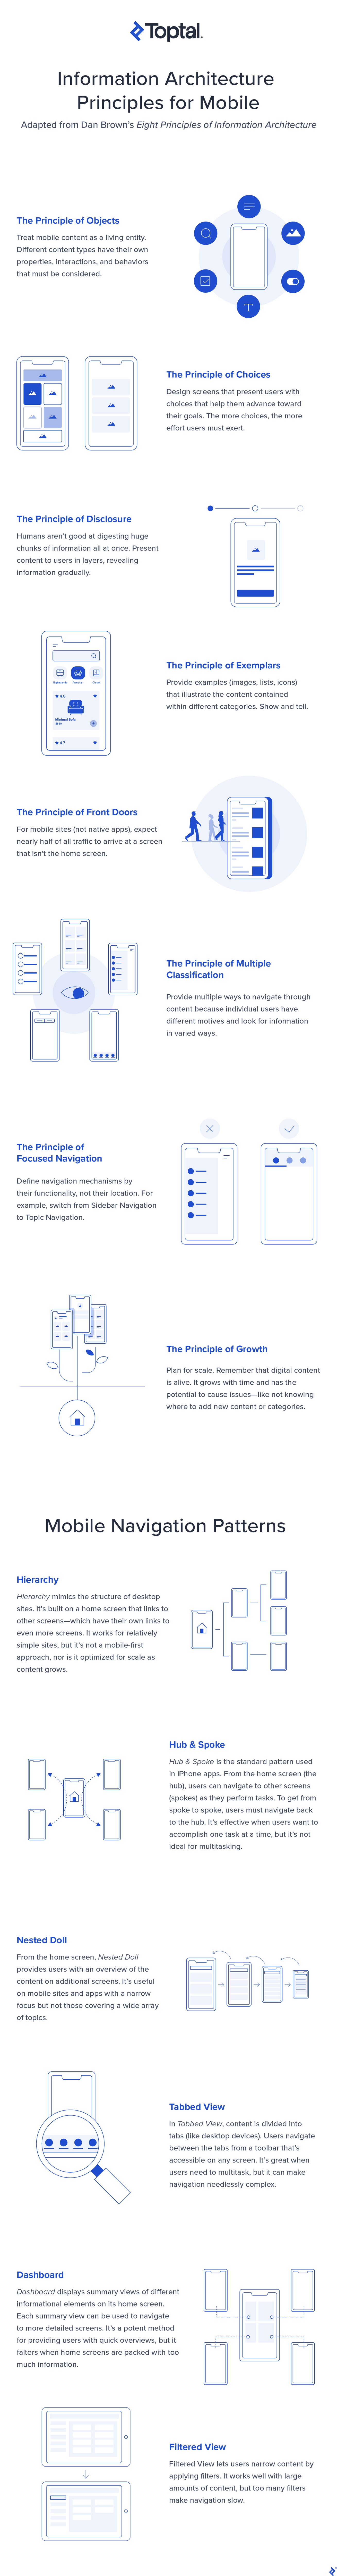 Information Architecture Principles for Mobile Infographic